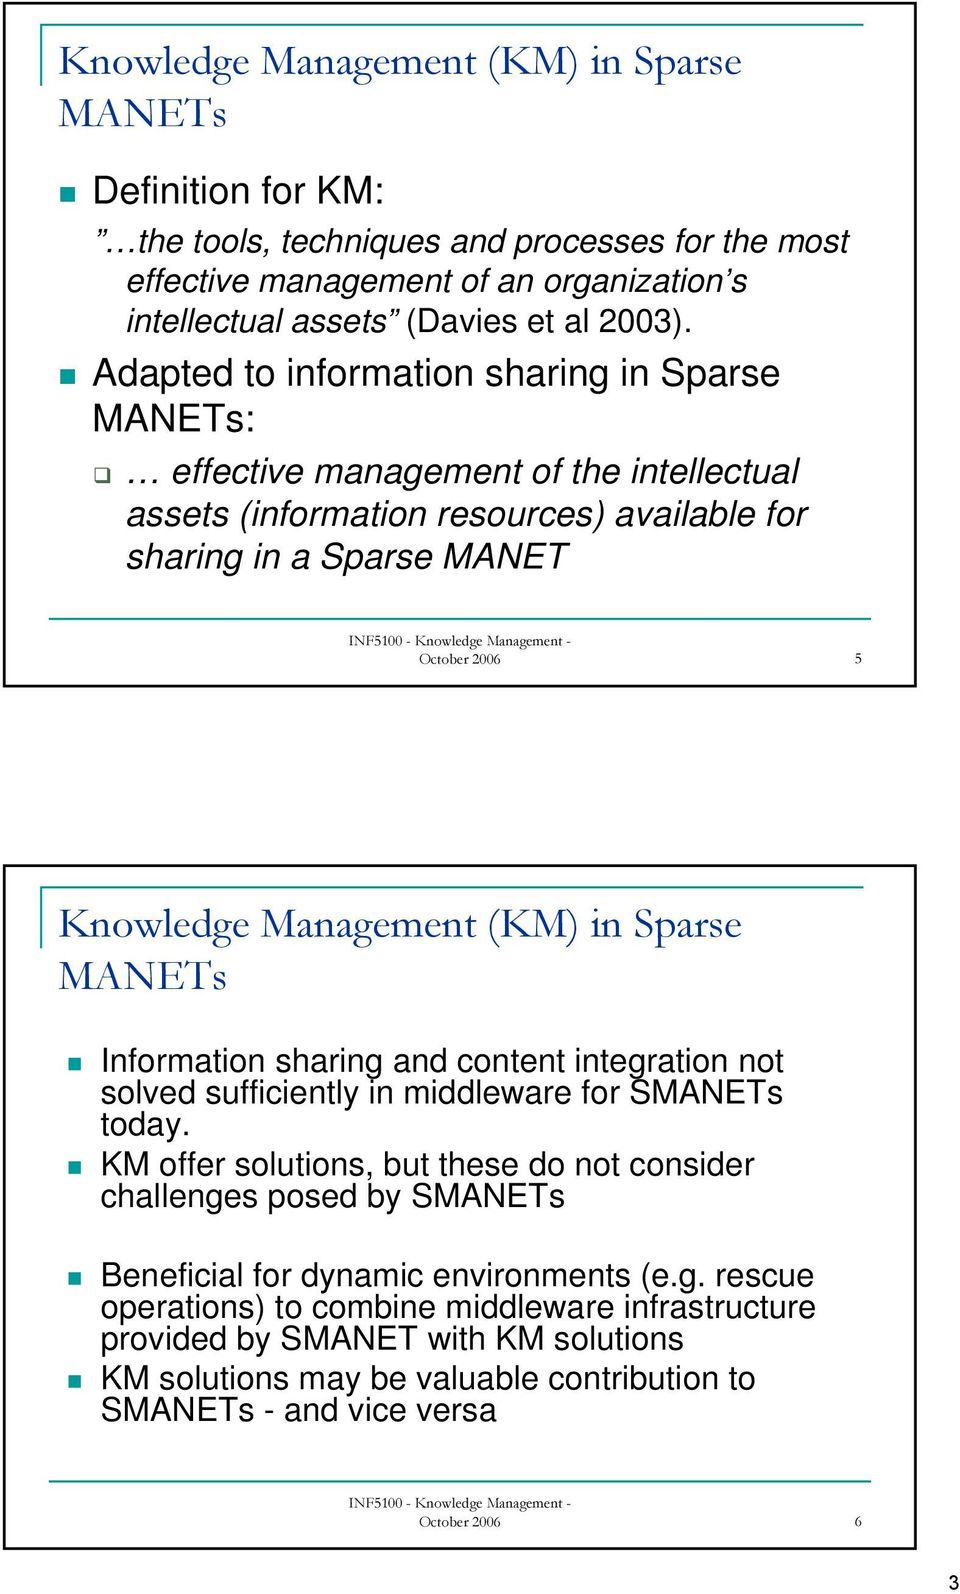 (KM) in Sparse MANETs Information sharing and content integration not solved sufficiently in middleware for SMANETs today.